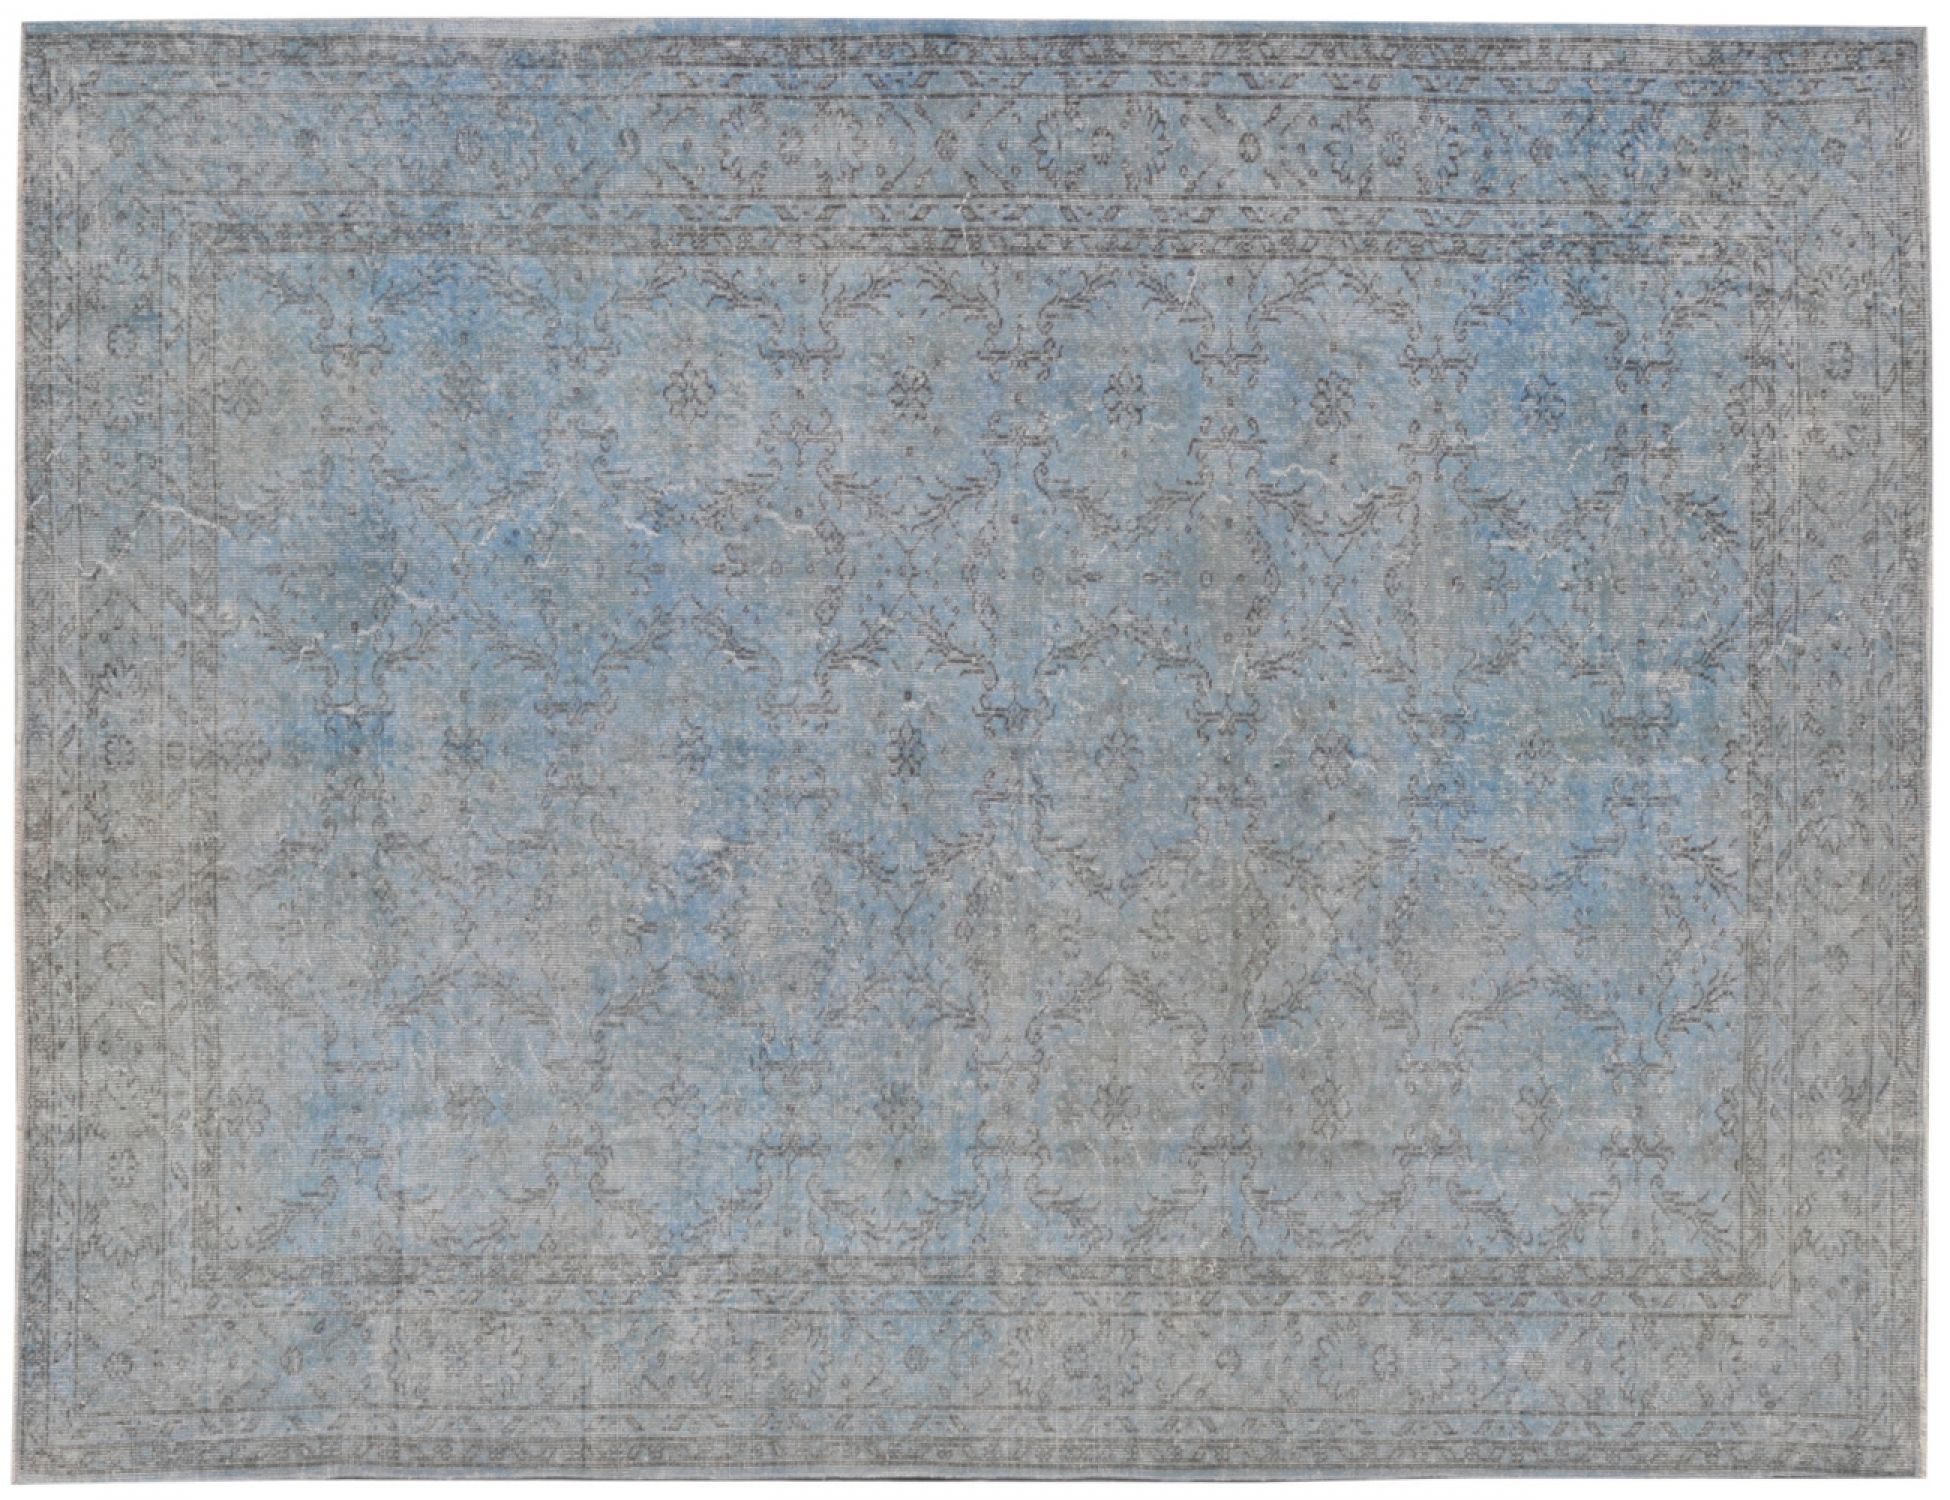 Vintage Carpet  blue <br/>292 x 205 cm